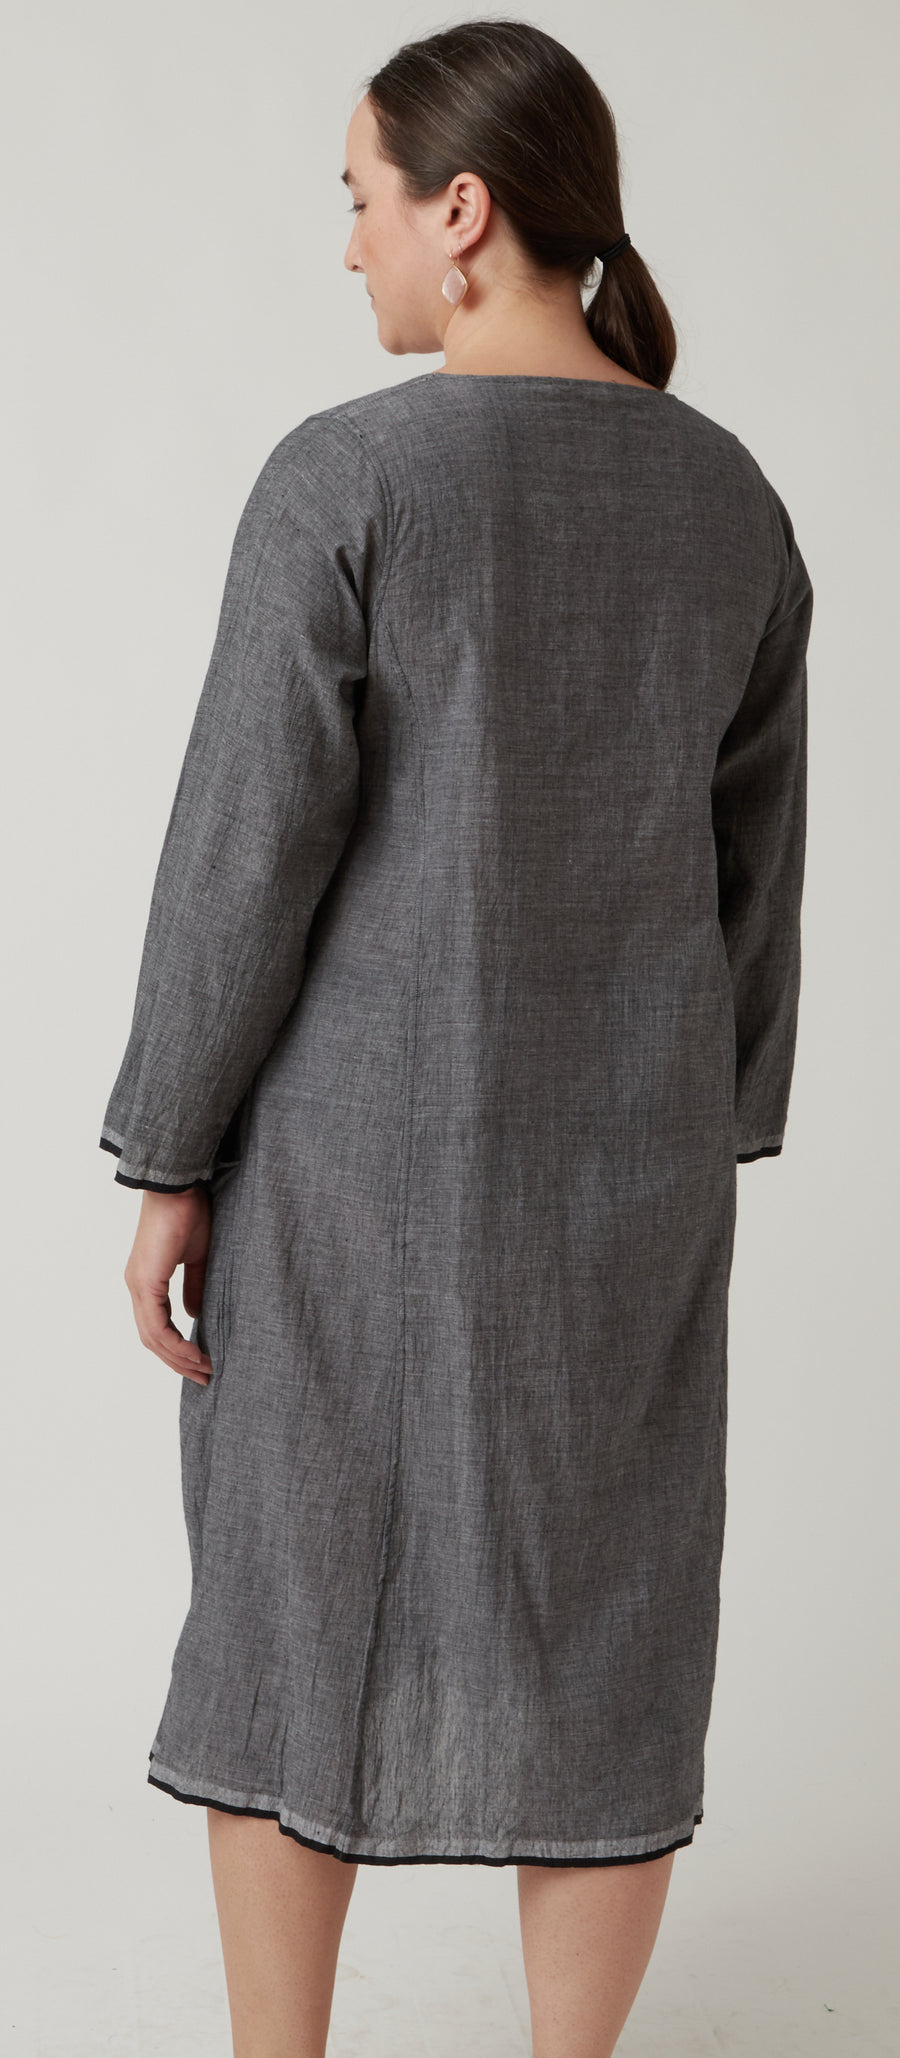 Injiri Grey Long Sleeved Dress